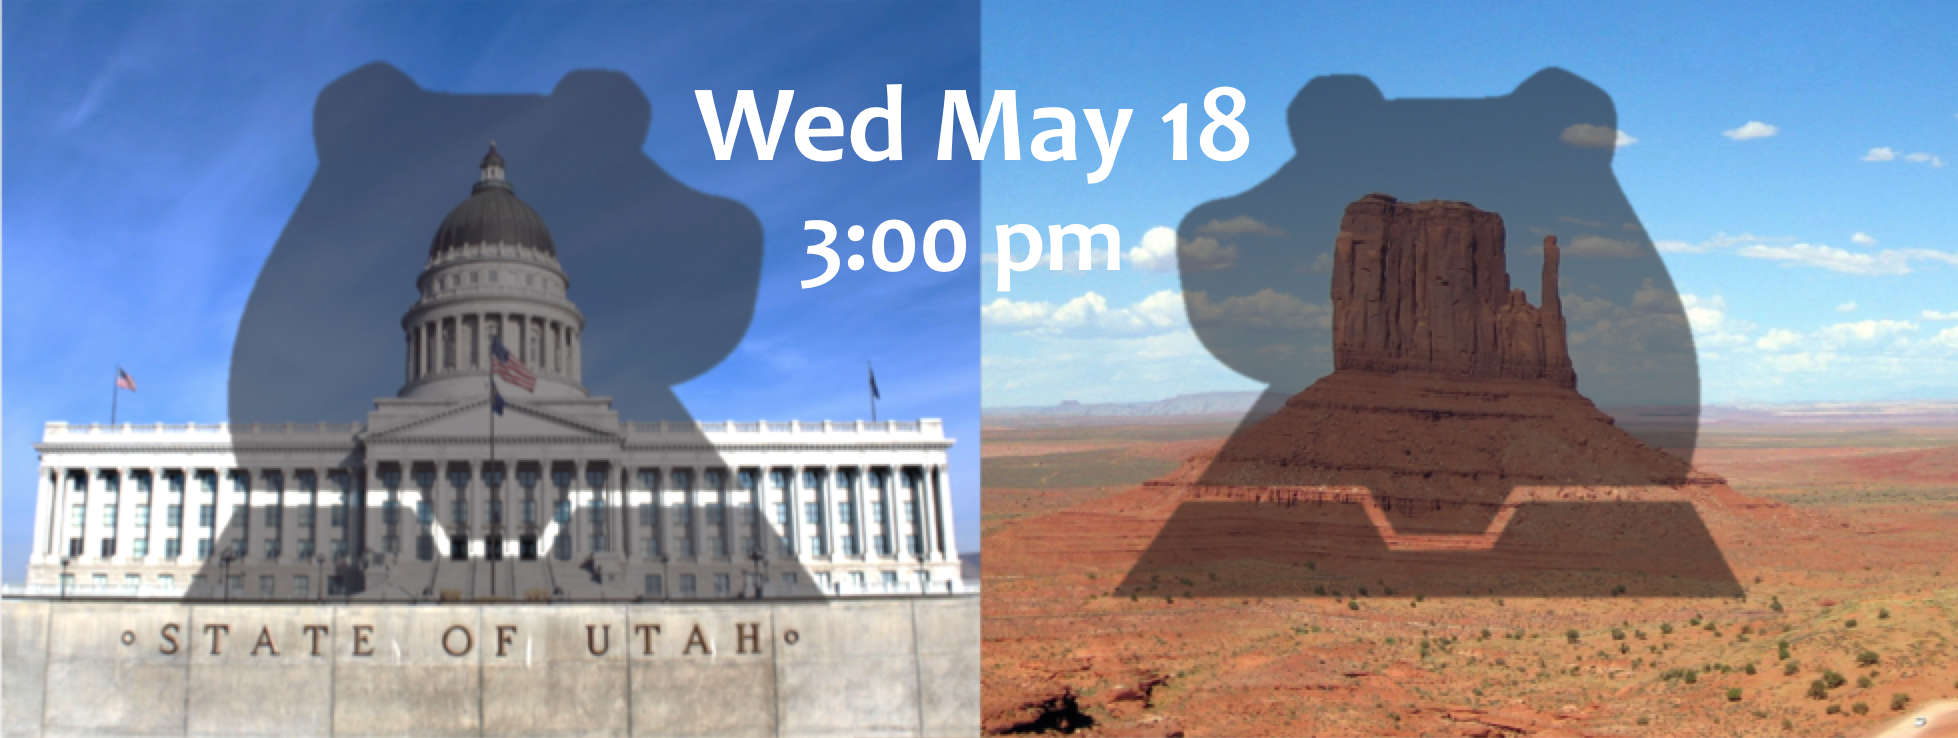 Utah state capitol Wednesday, May 18th at 3 pm